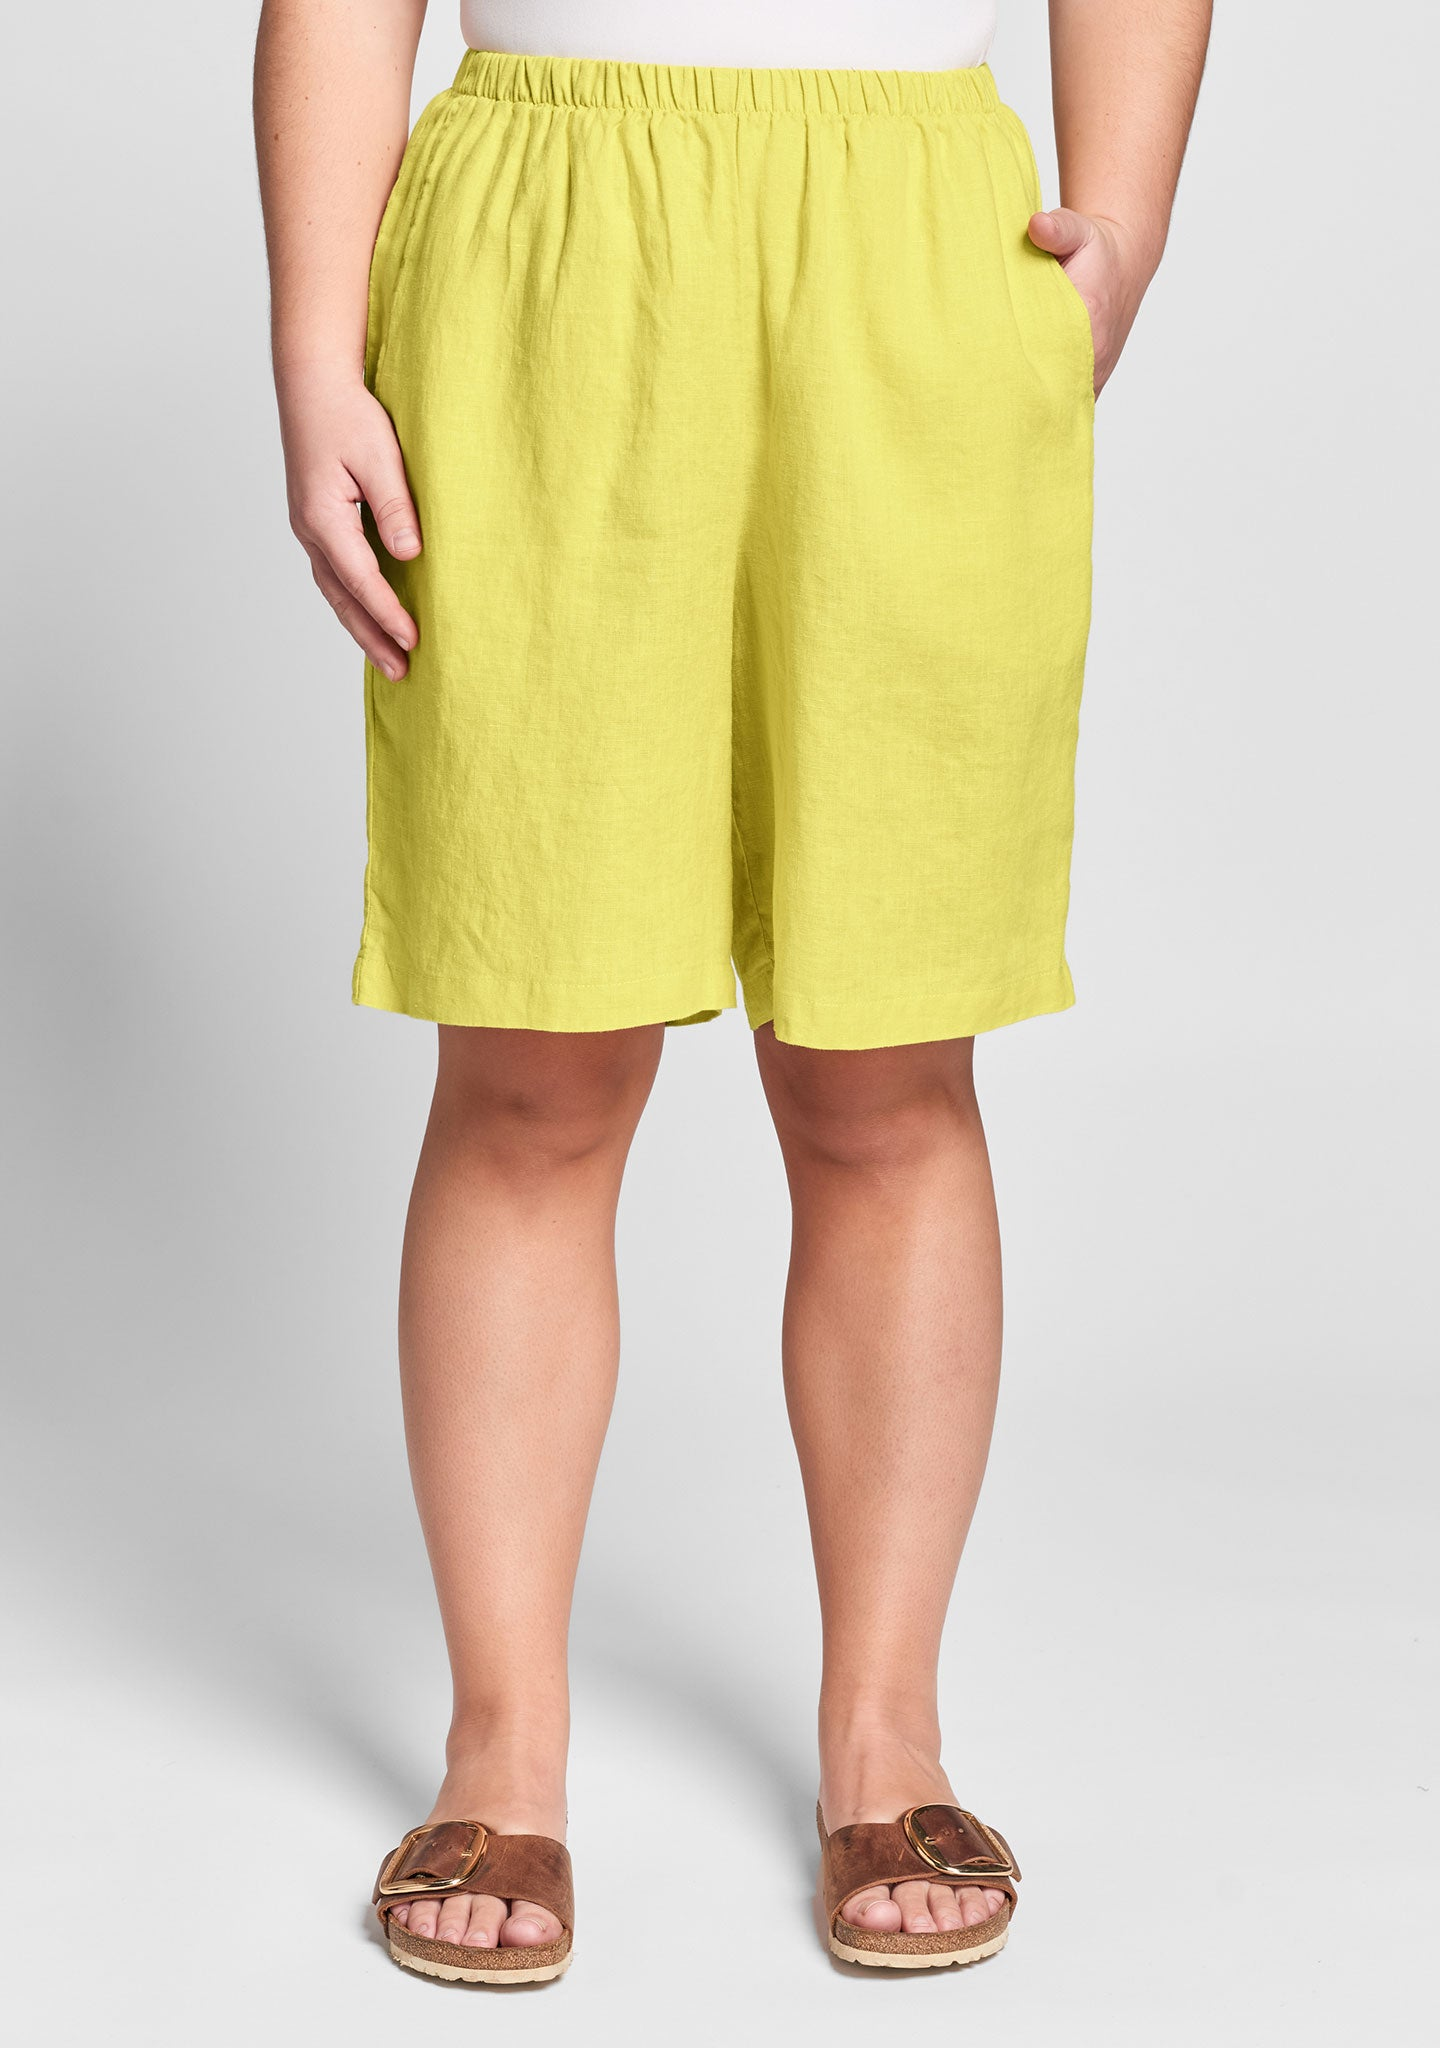 sun shorts linen shorts yellow